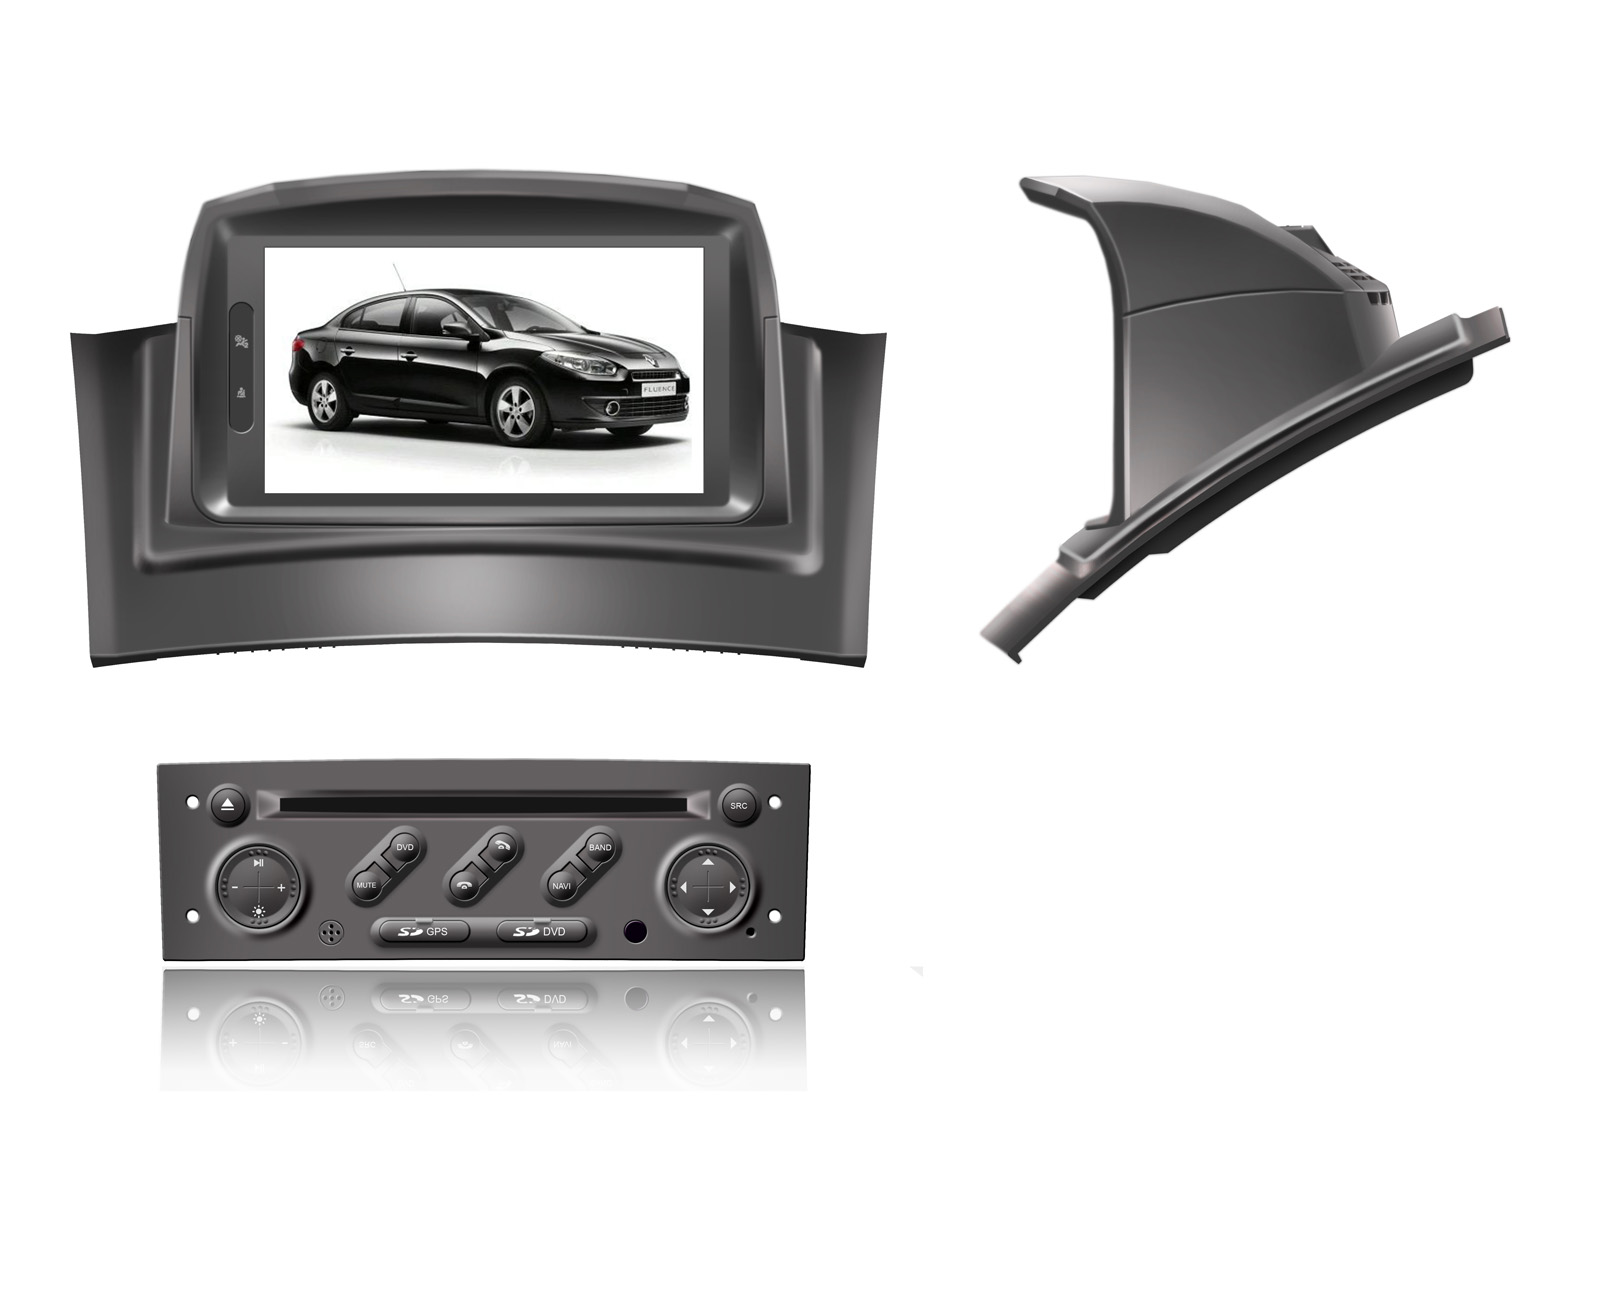 autoradio agw92 gps wifi dvd cd bluetooth usb sd pour. Black Bedroom Furniture Sets. Home Design Ideas